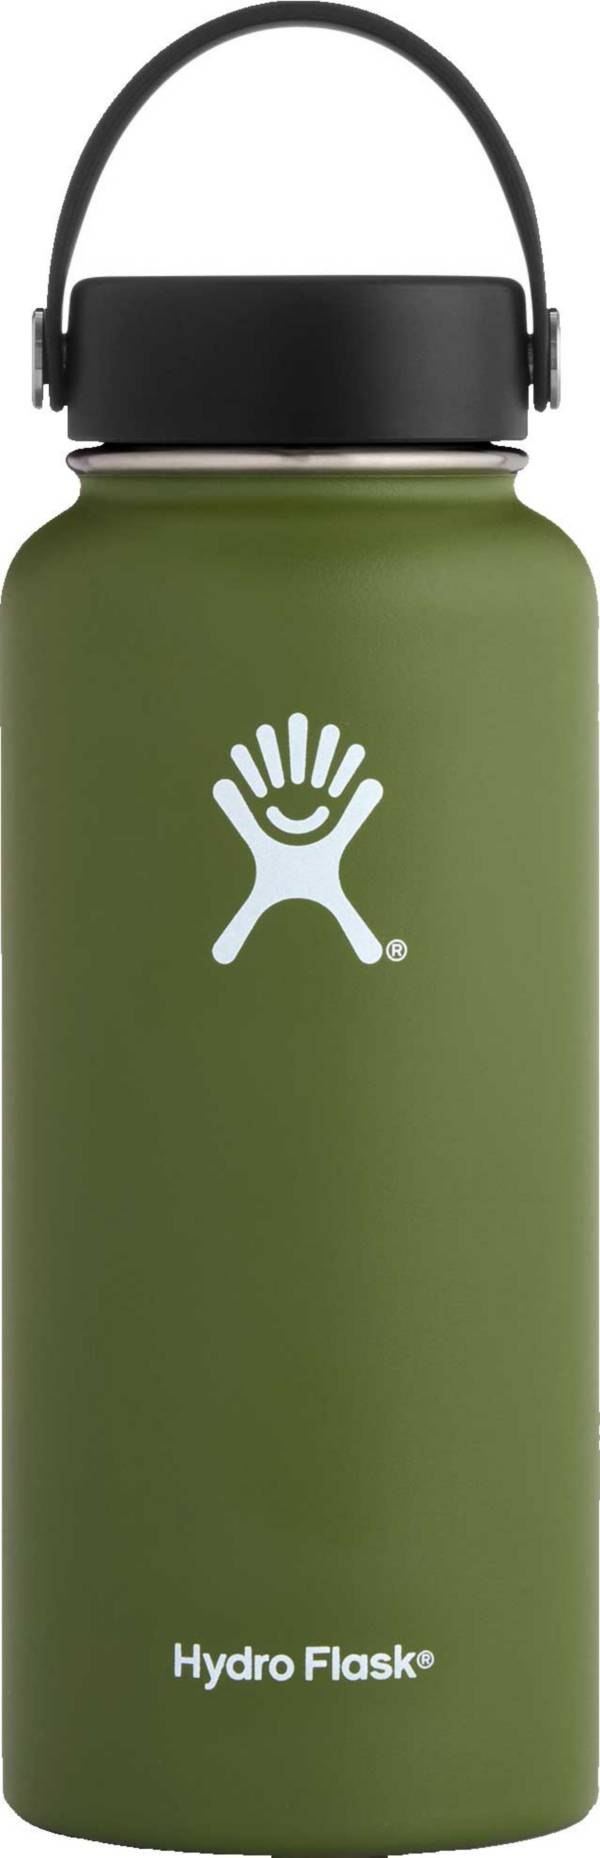 Hydro Flask Wide Mouth 32 oz. Bottle product image